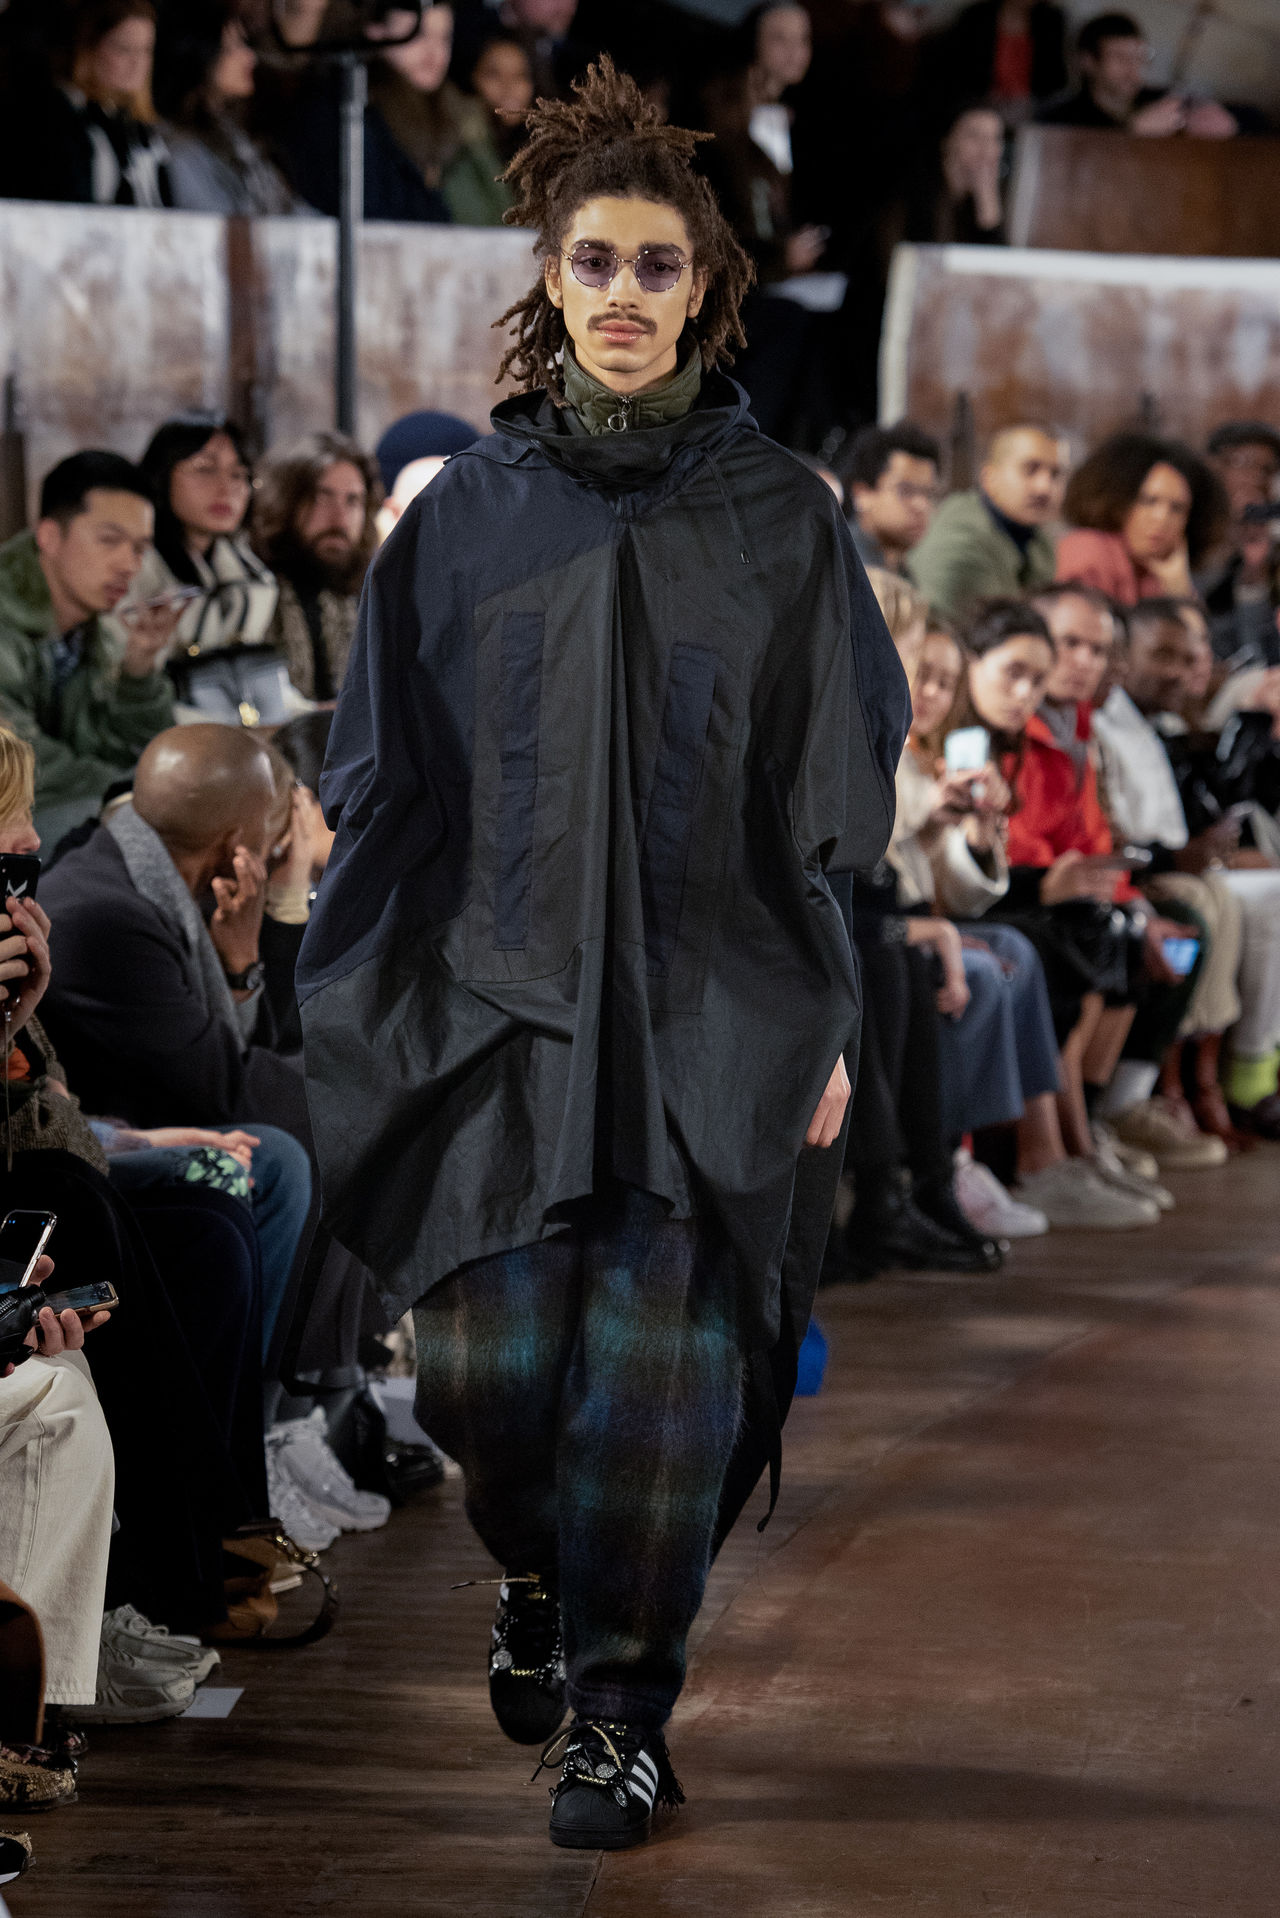 A model walking down the runway wearing Nicholas Daley's Autumn Winter 2020 collection.